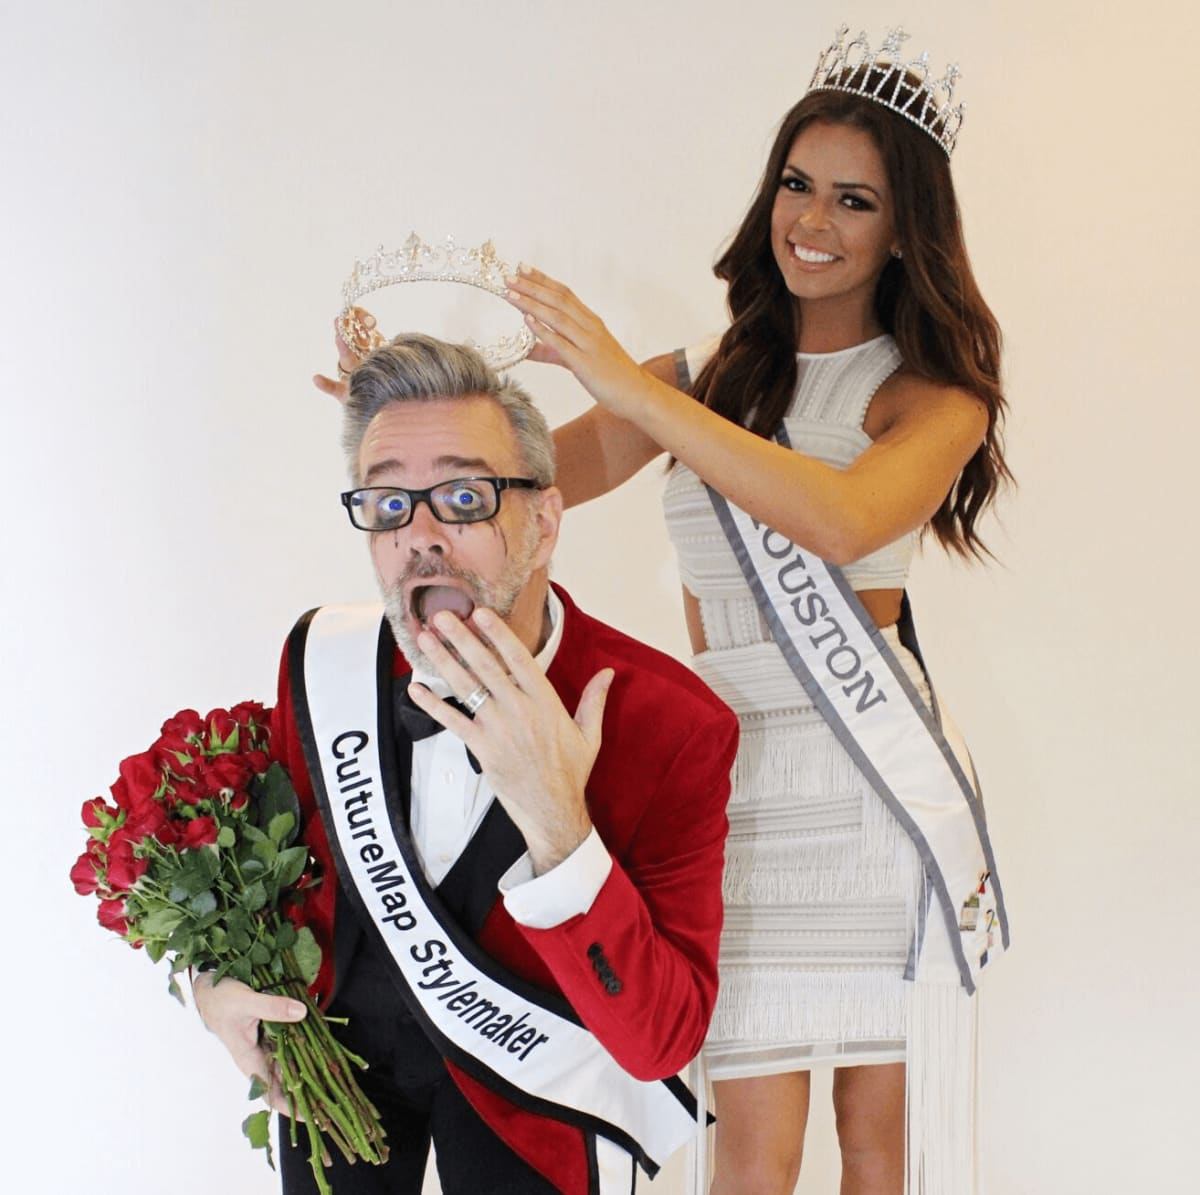 Michael Pearce Stylemaker crowned by Miss Houston